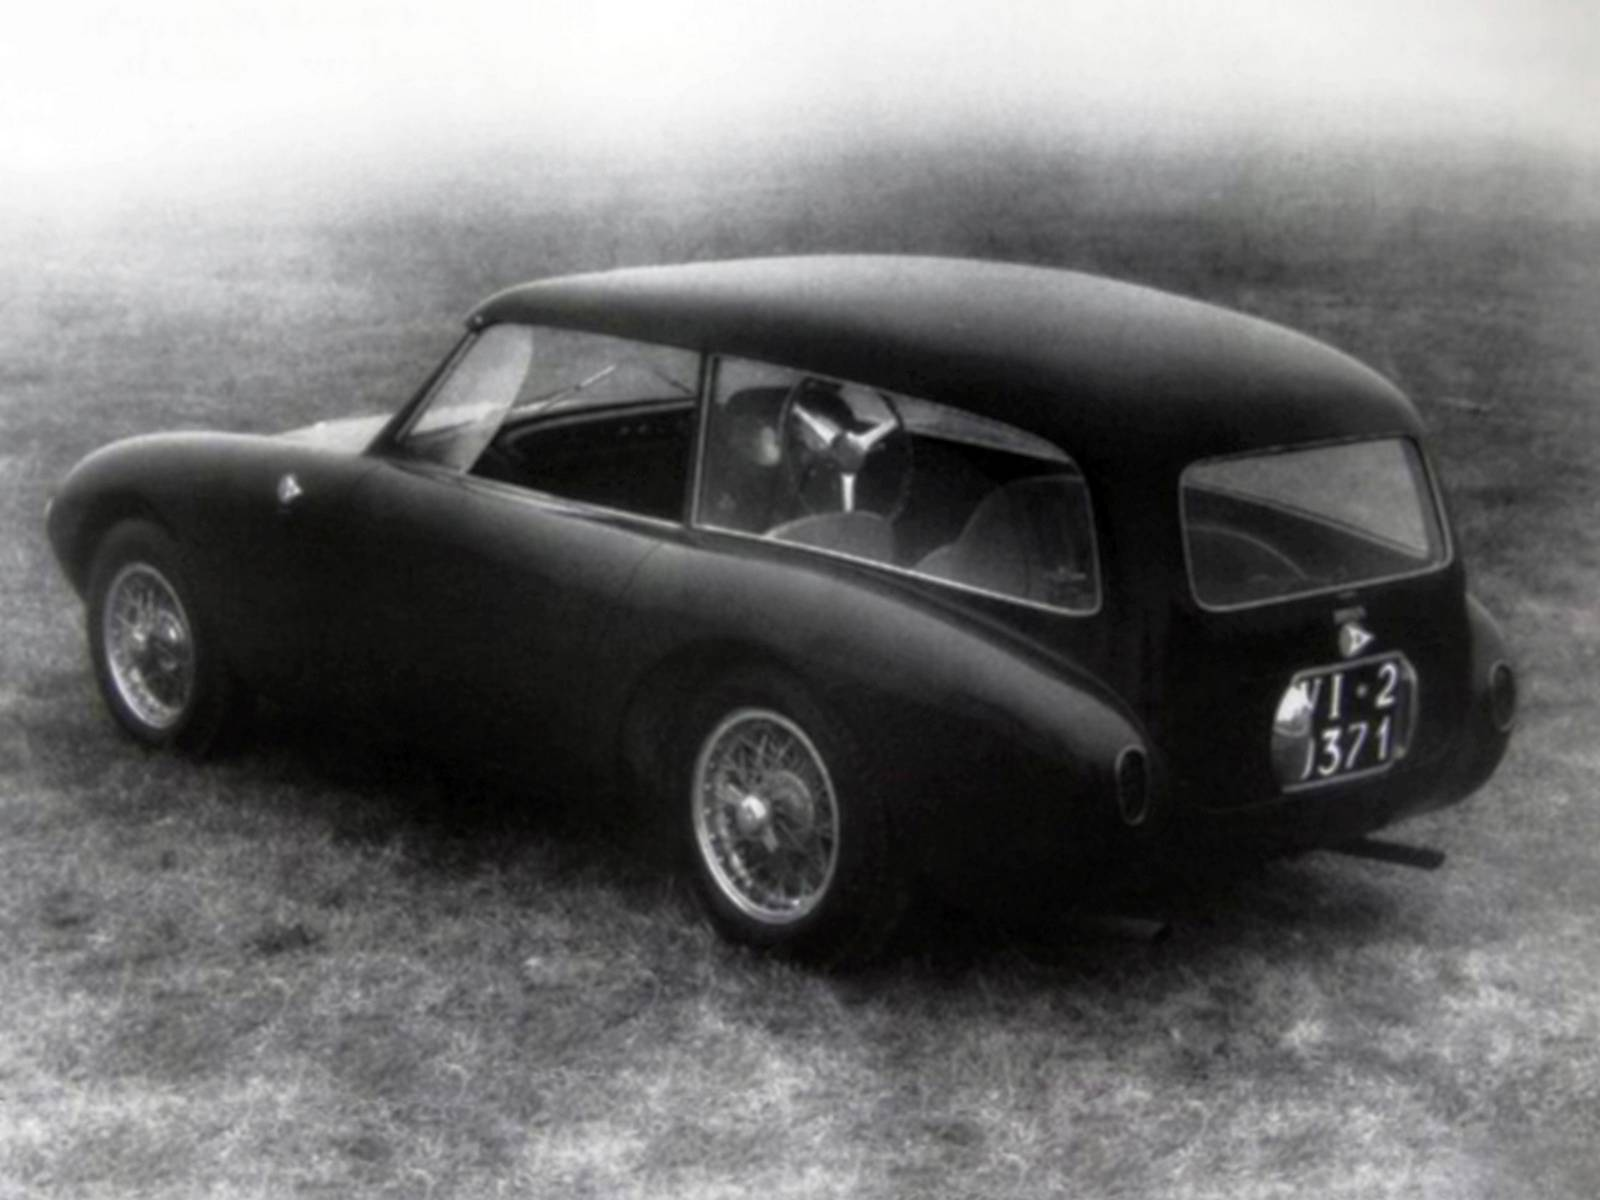 1952 Ferrari 212 Export Shooting Brake by Fontana